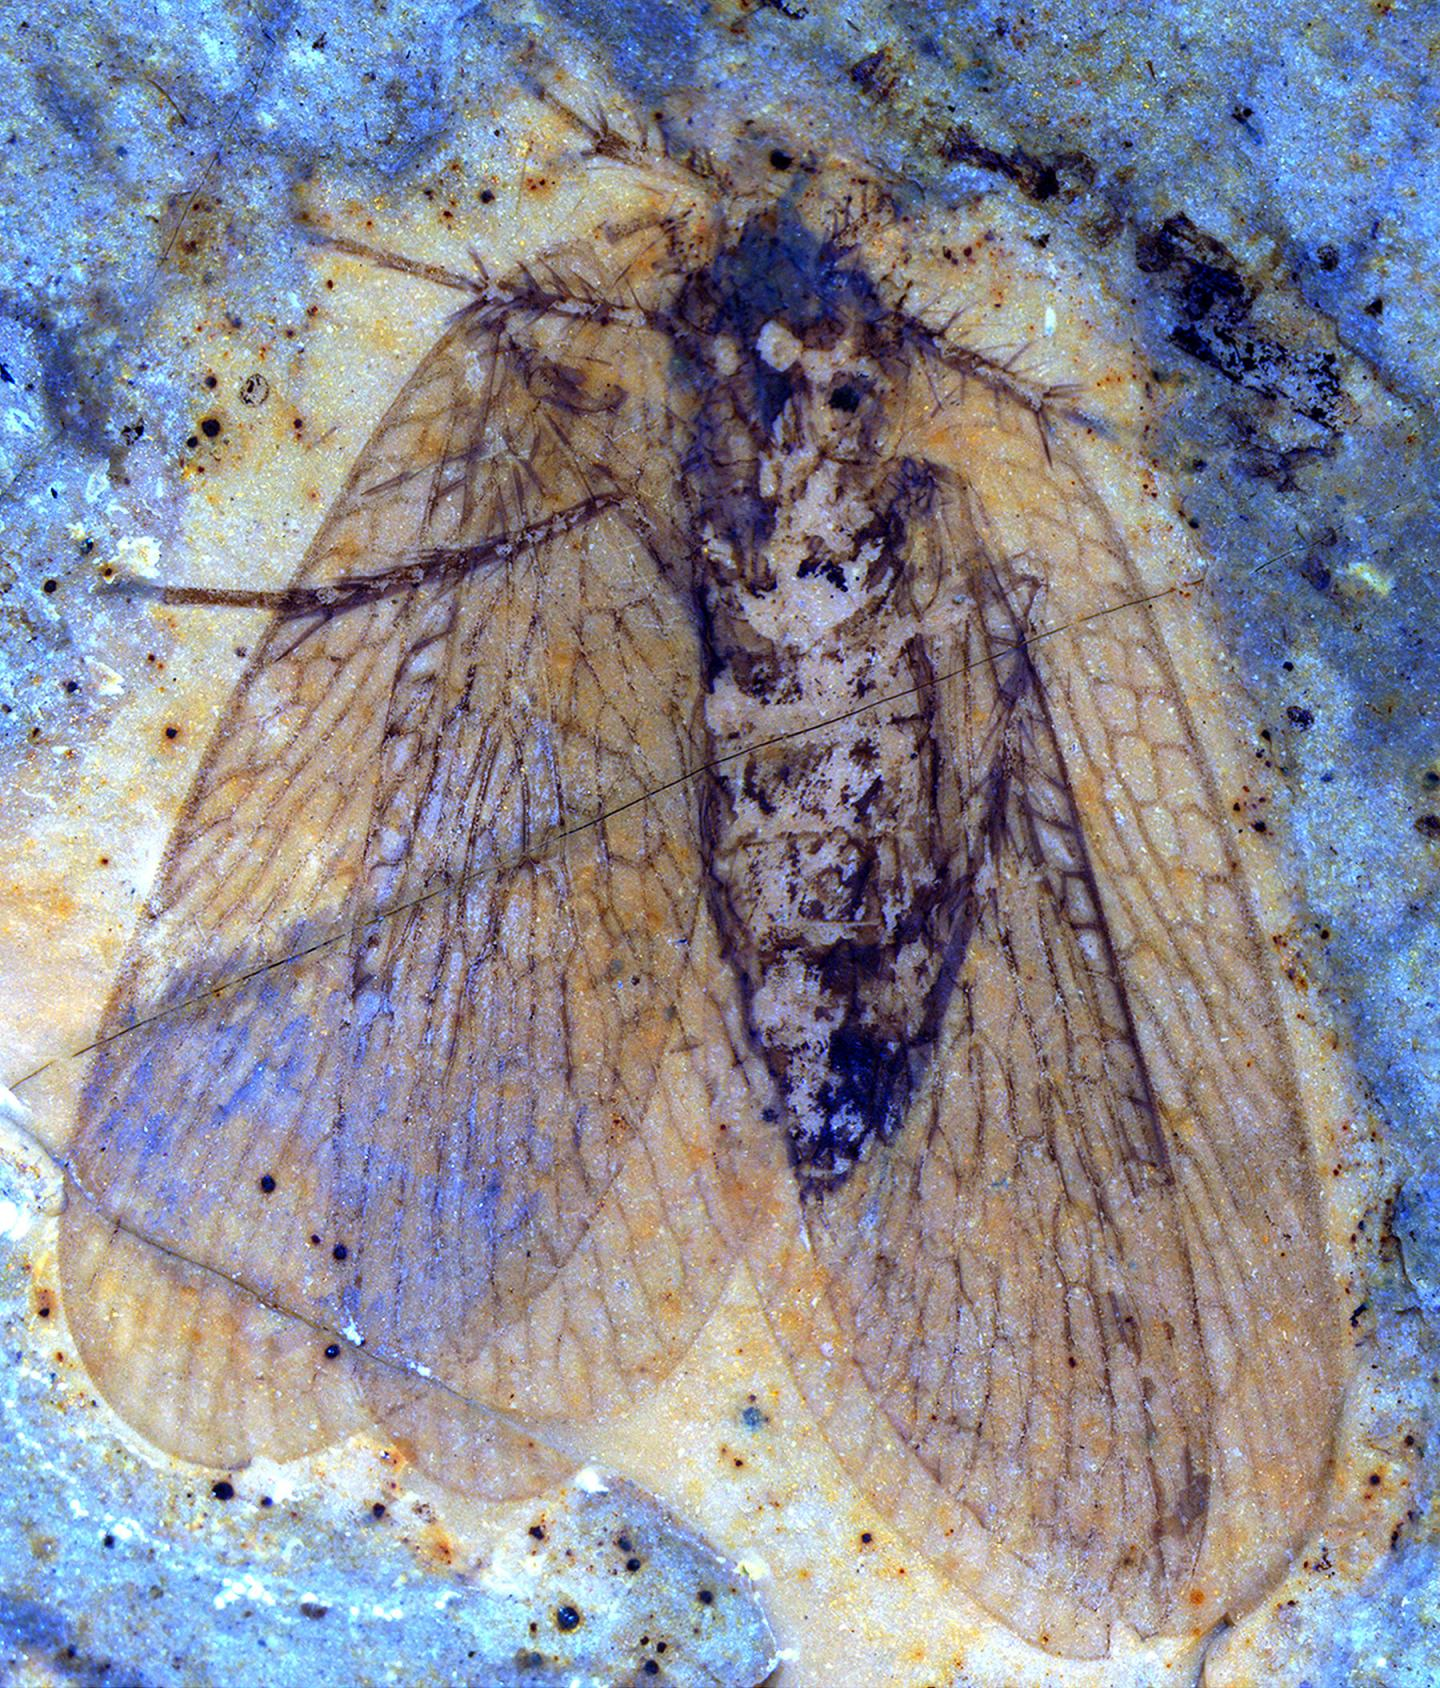 A New Species of Scorpionfly Fossil From 53 Million Years Ago at Mcabee, British Columbia